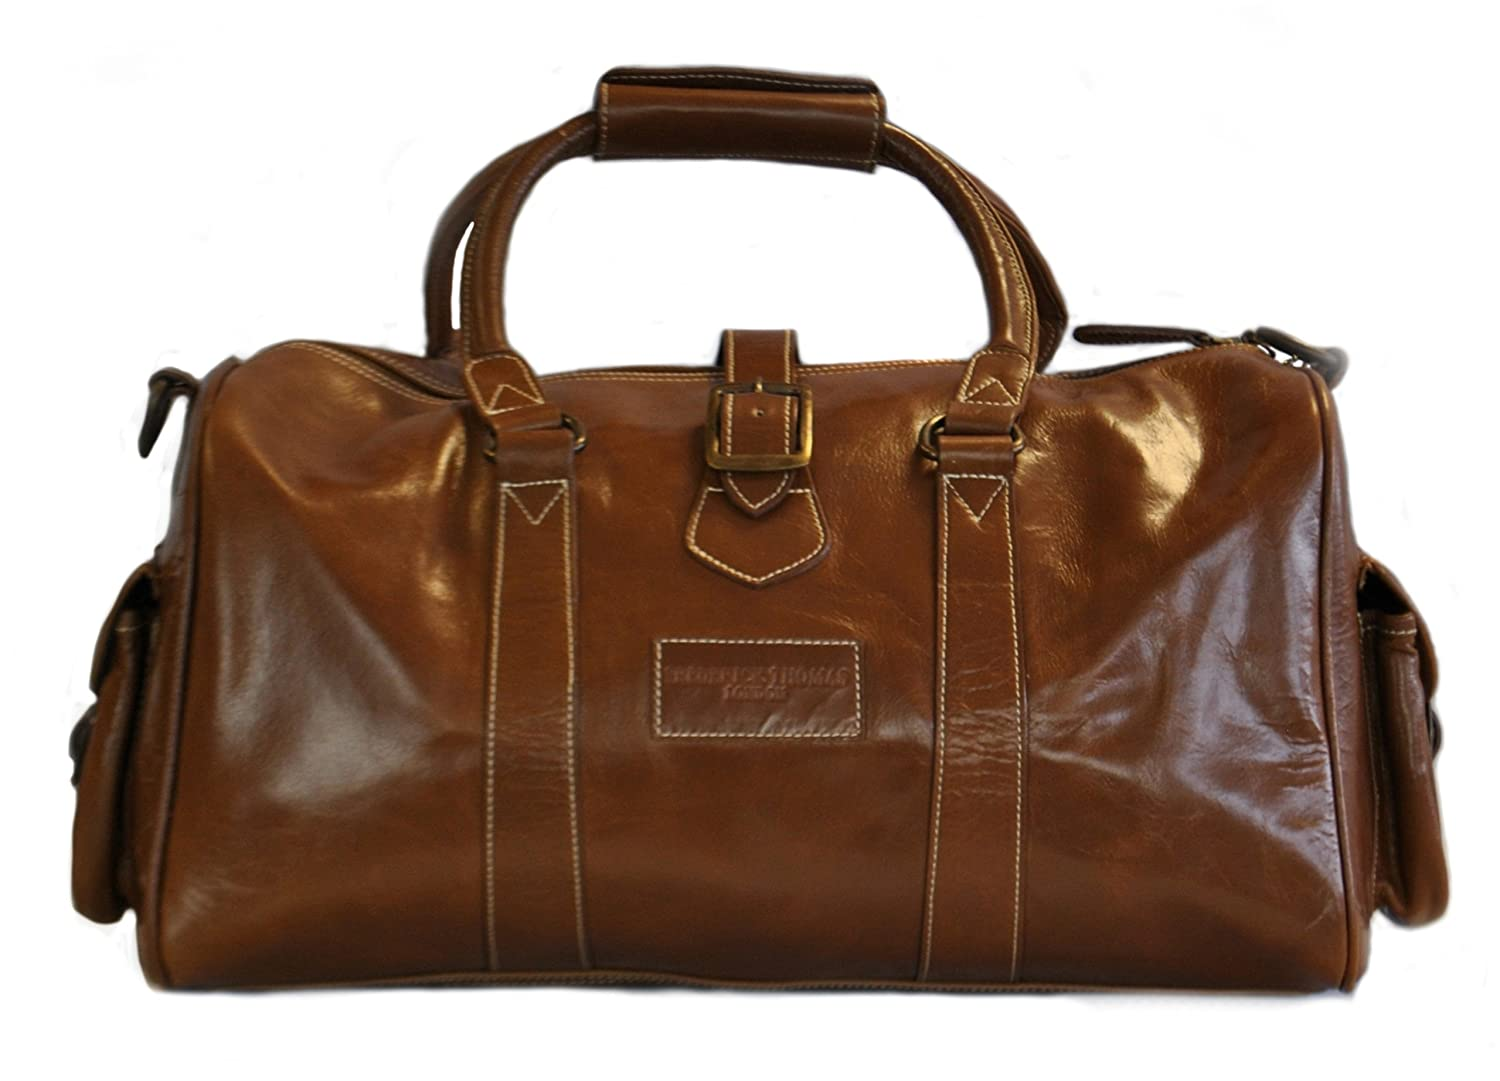 4bf06e1e5de0 Tan brown leather weekend holdall overnight bag with genuine leather handles  and detailing by Frederick Thomas  Amazon.co.uk  Luggage